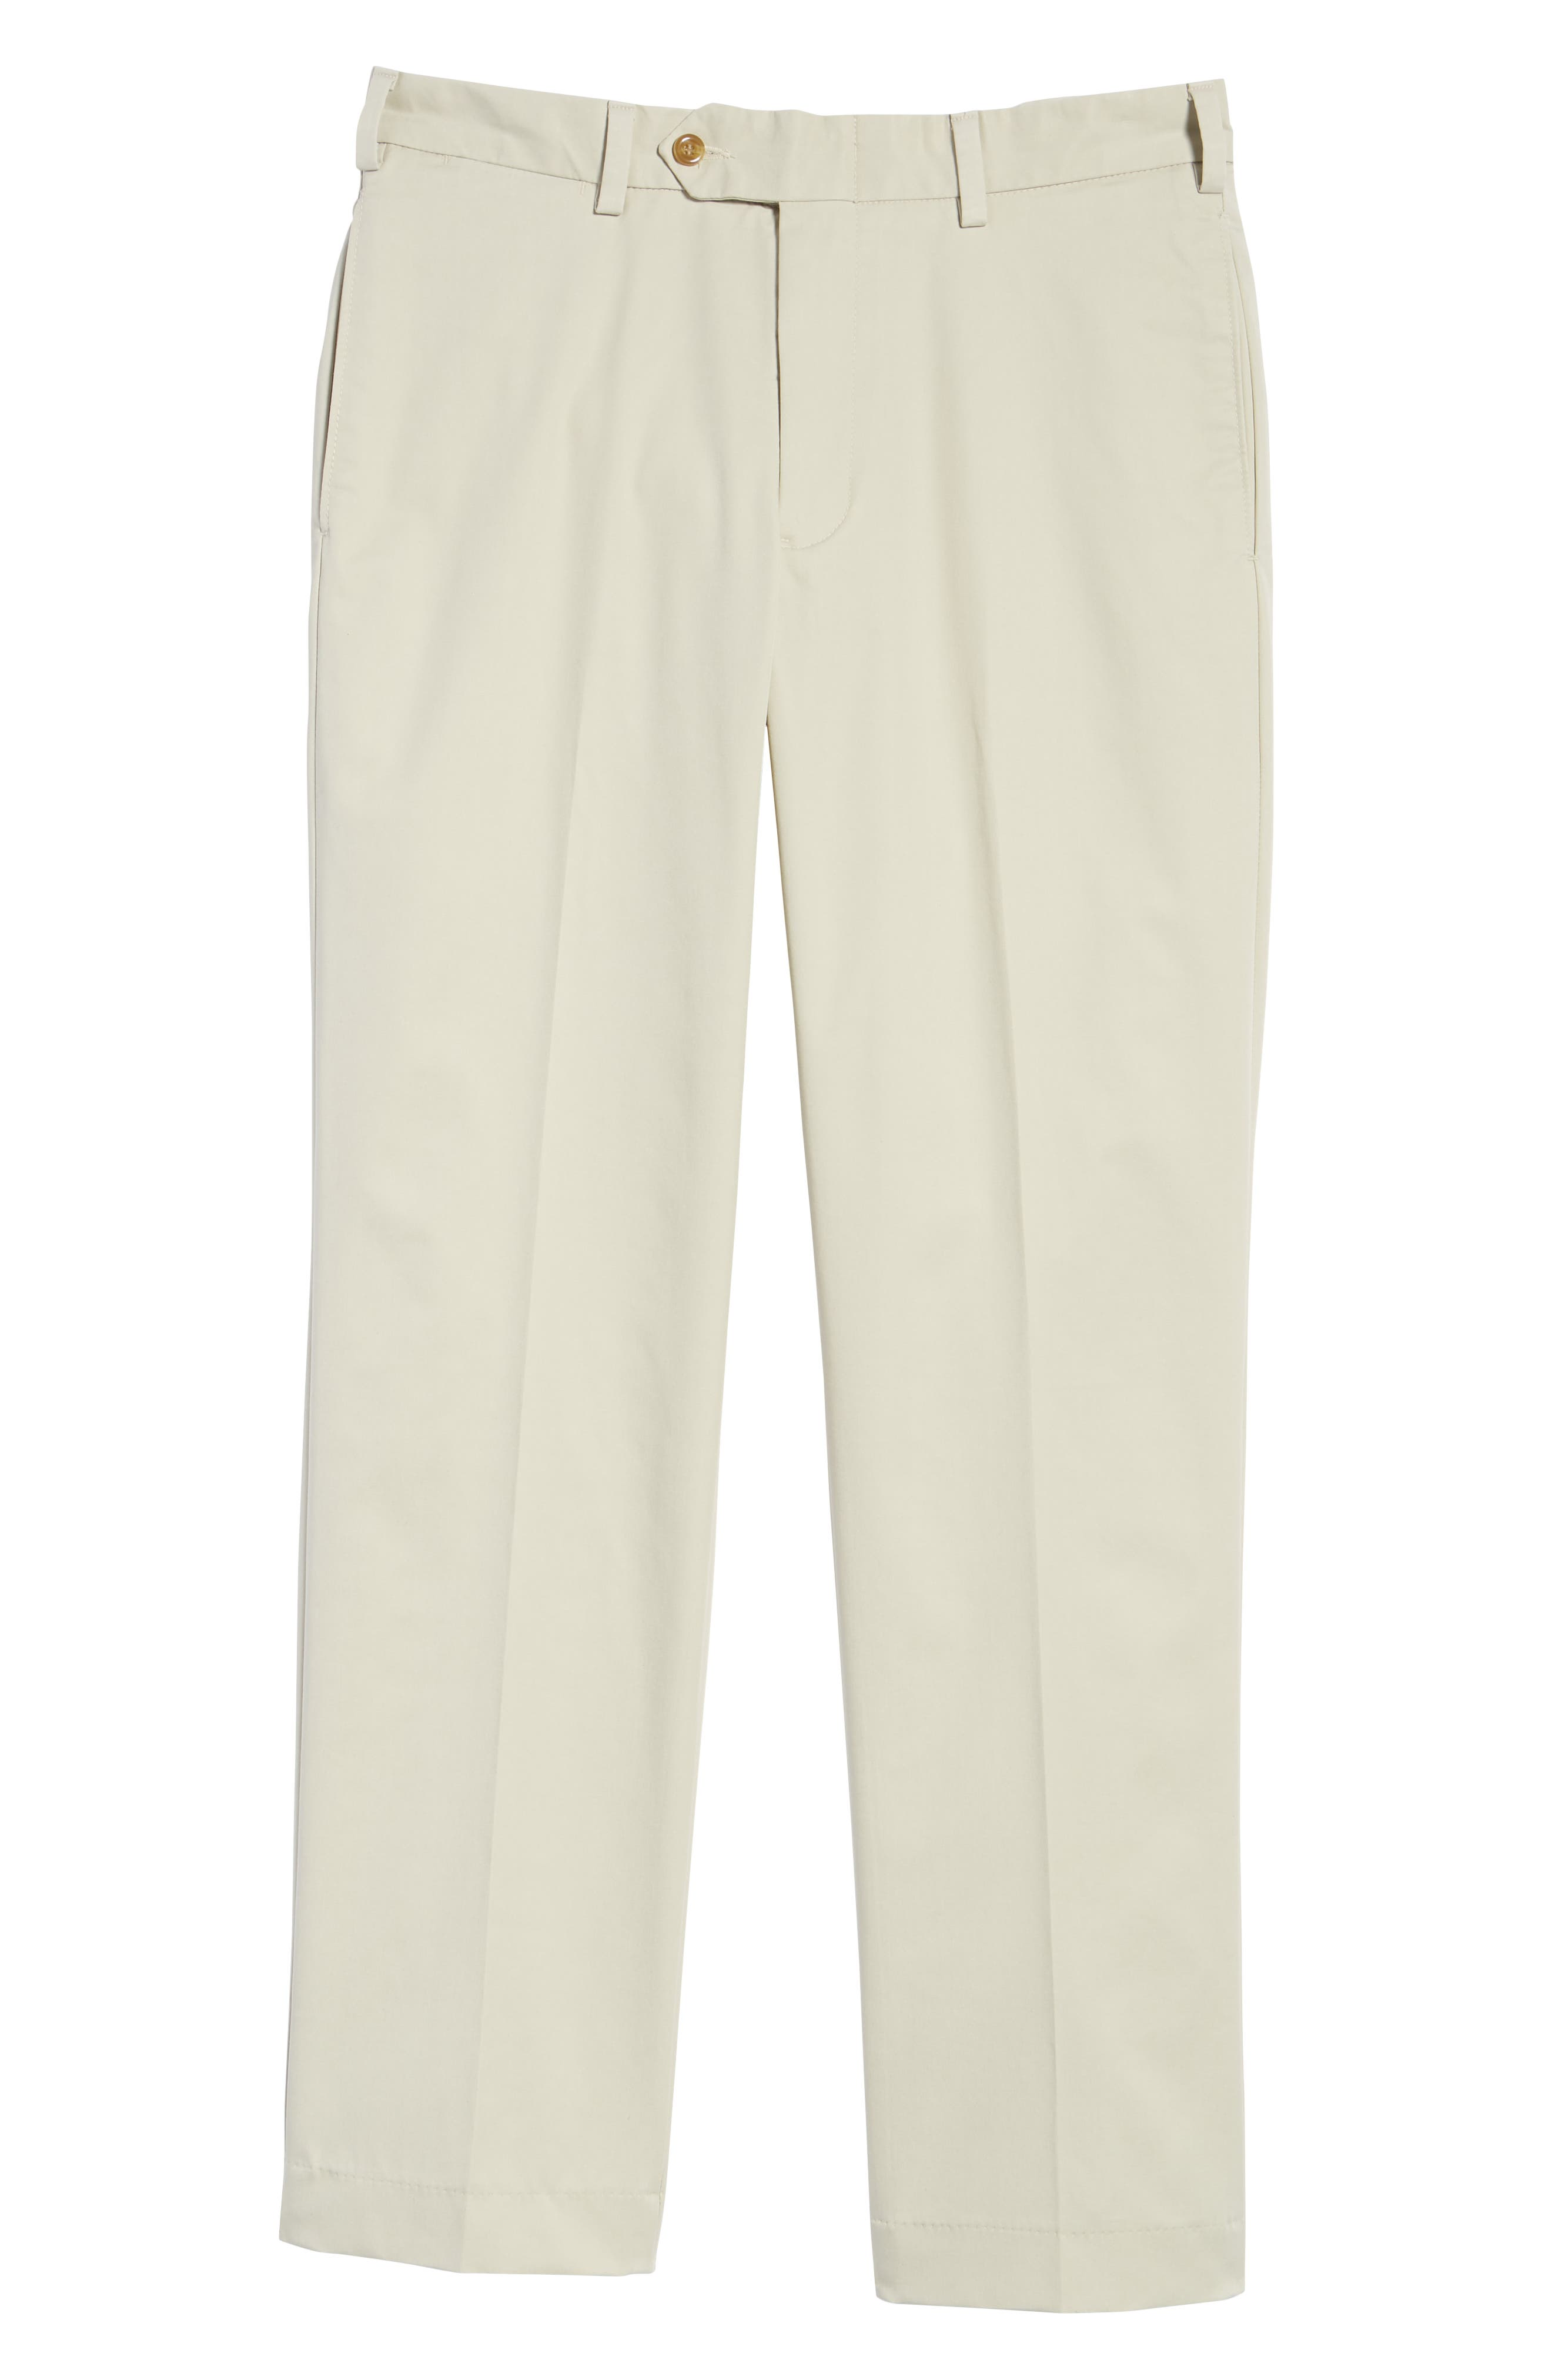 M2 Classic Fit Flat Front Travel Twill Pants,                             Alternate thumbnail 6, color,                             CEMENT